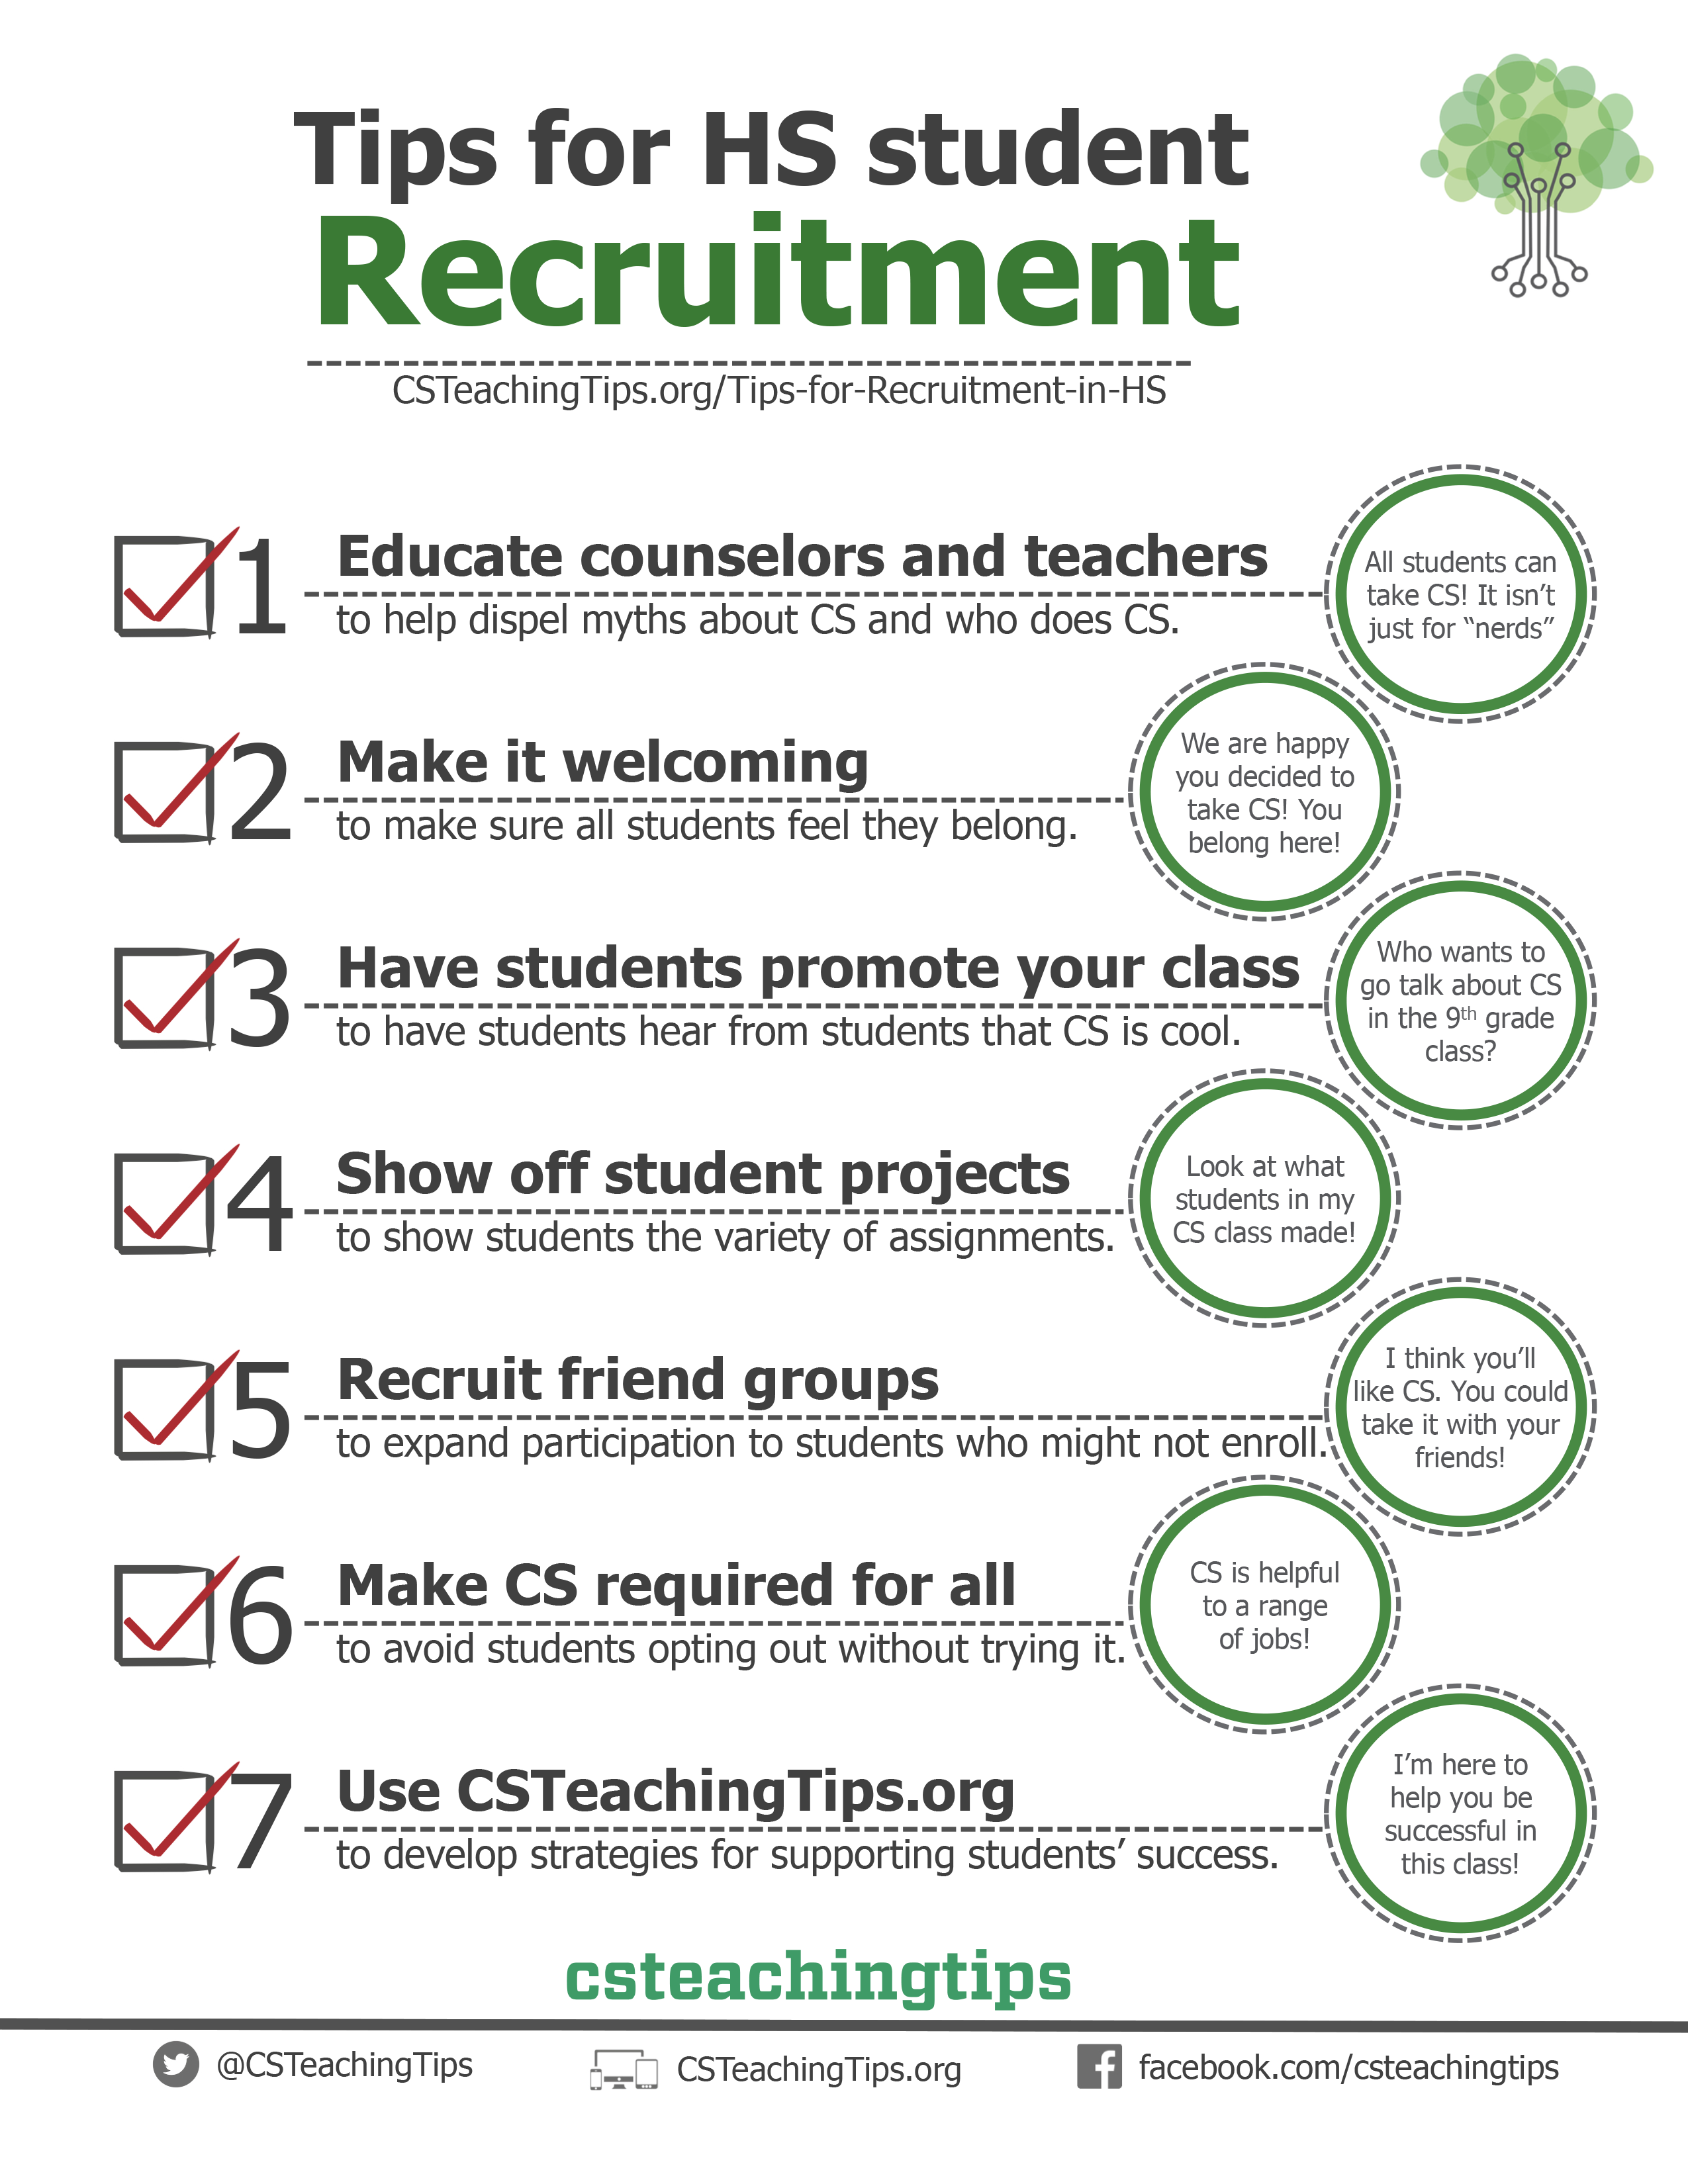 Tips for High School Student Recruitment